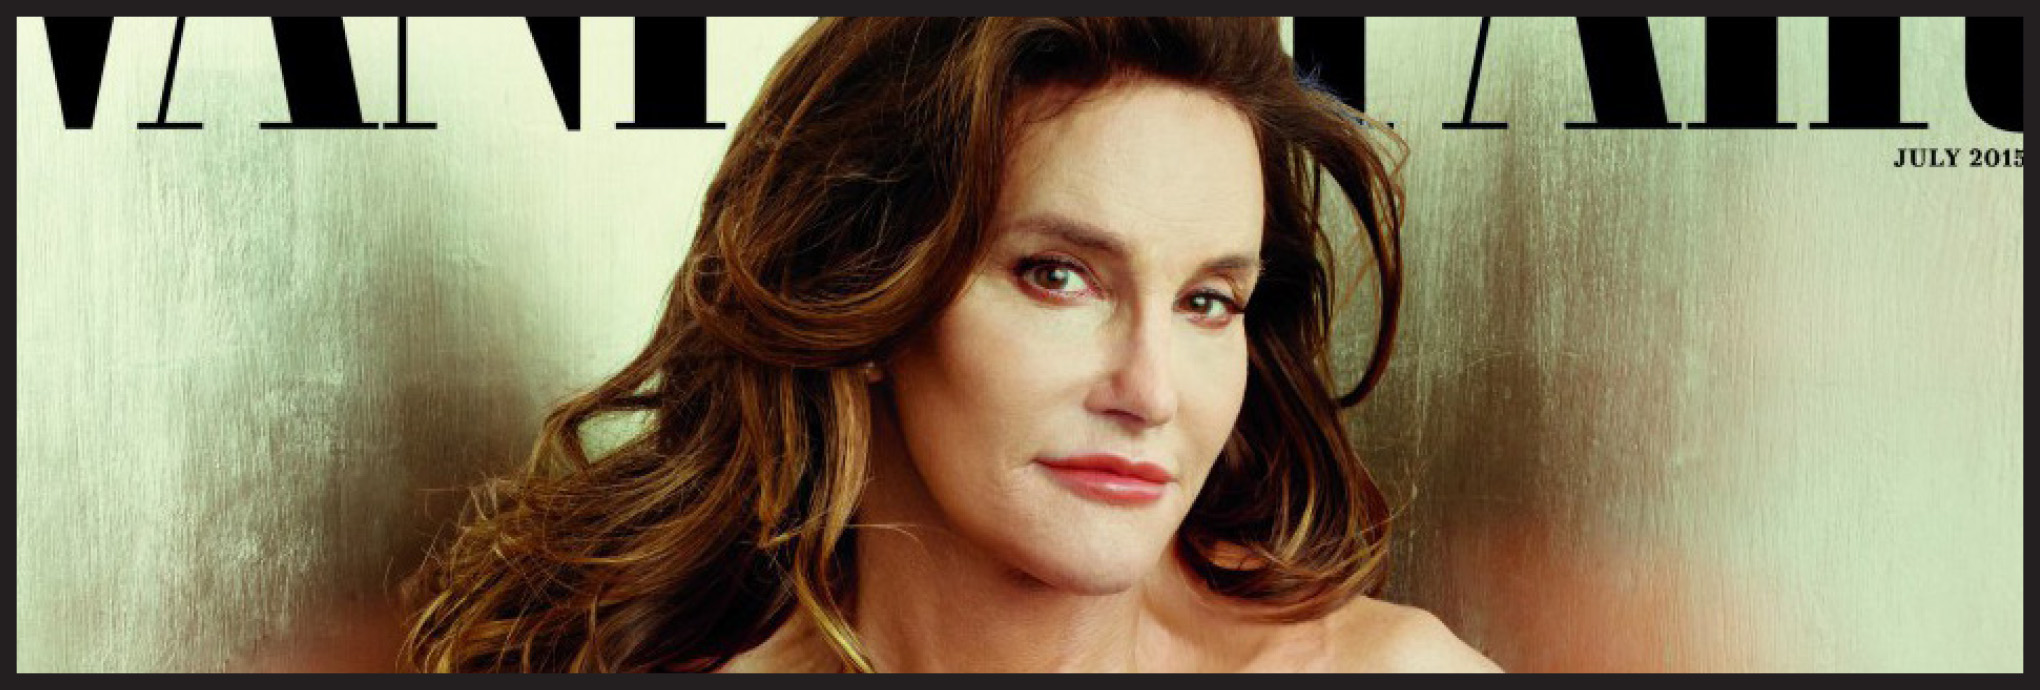 magazine-advertising-caitlyn-jenner